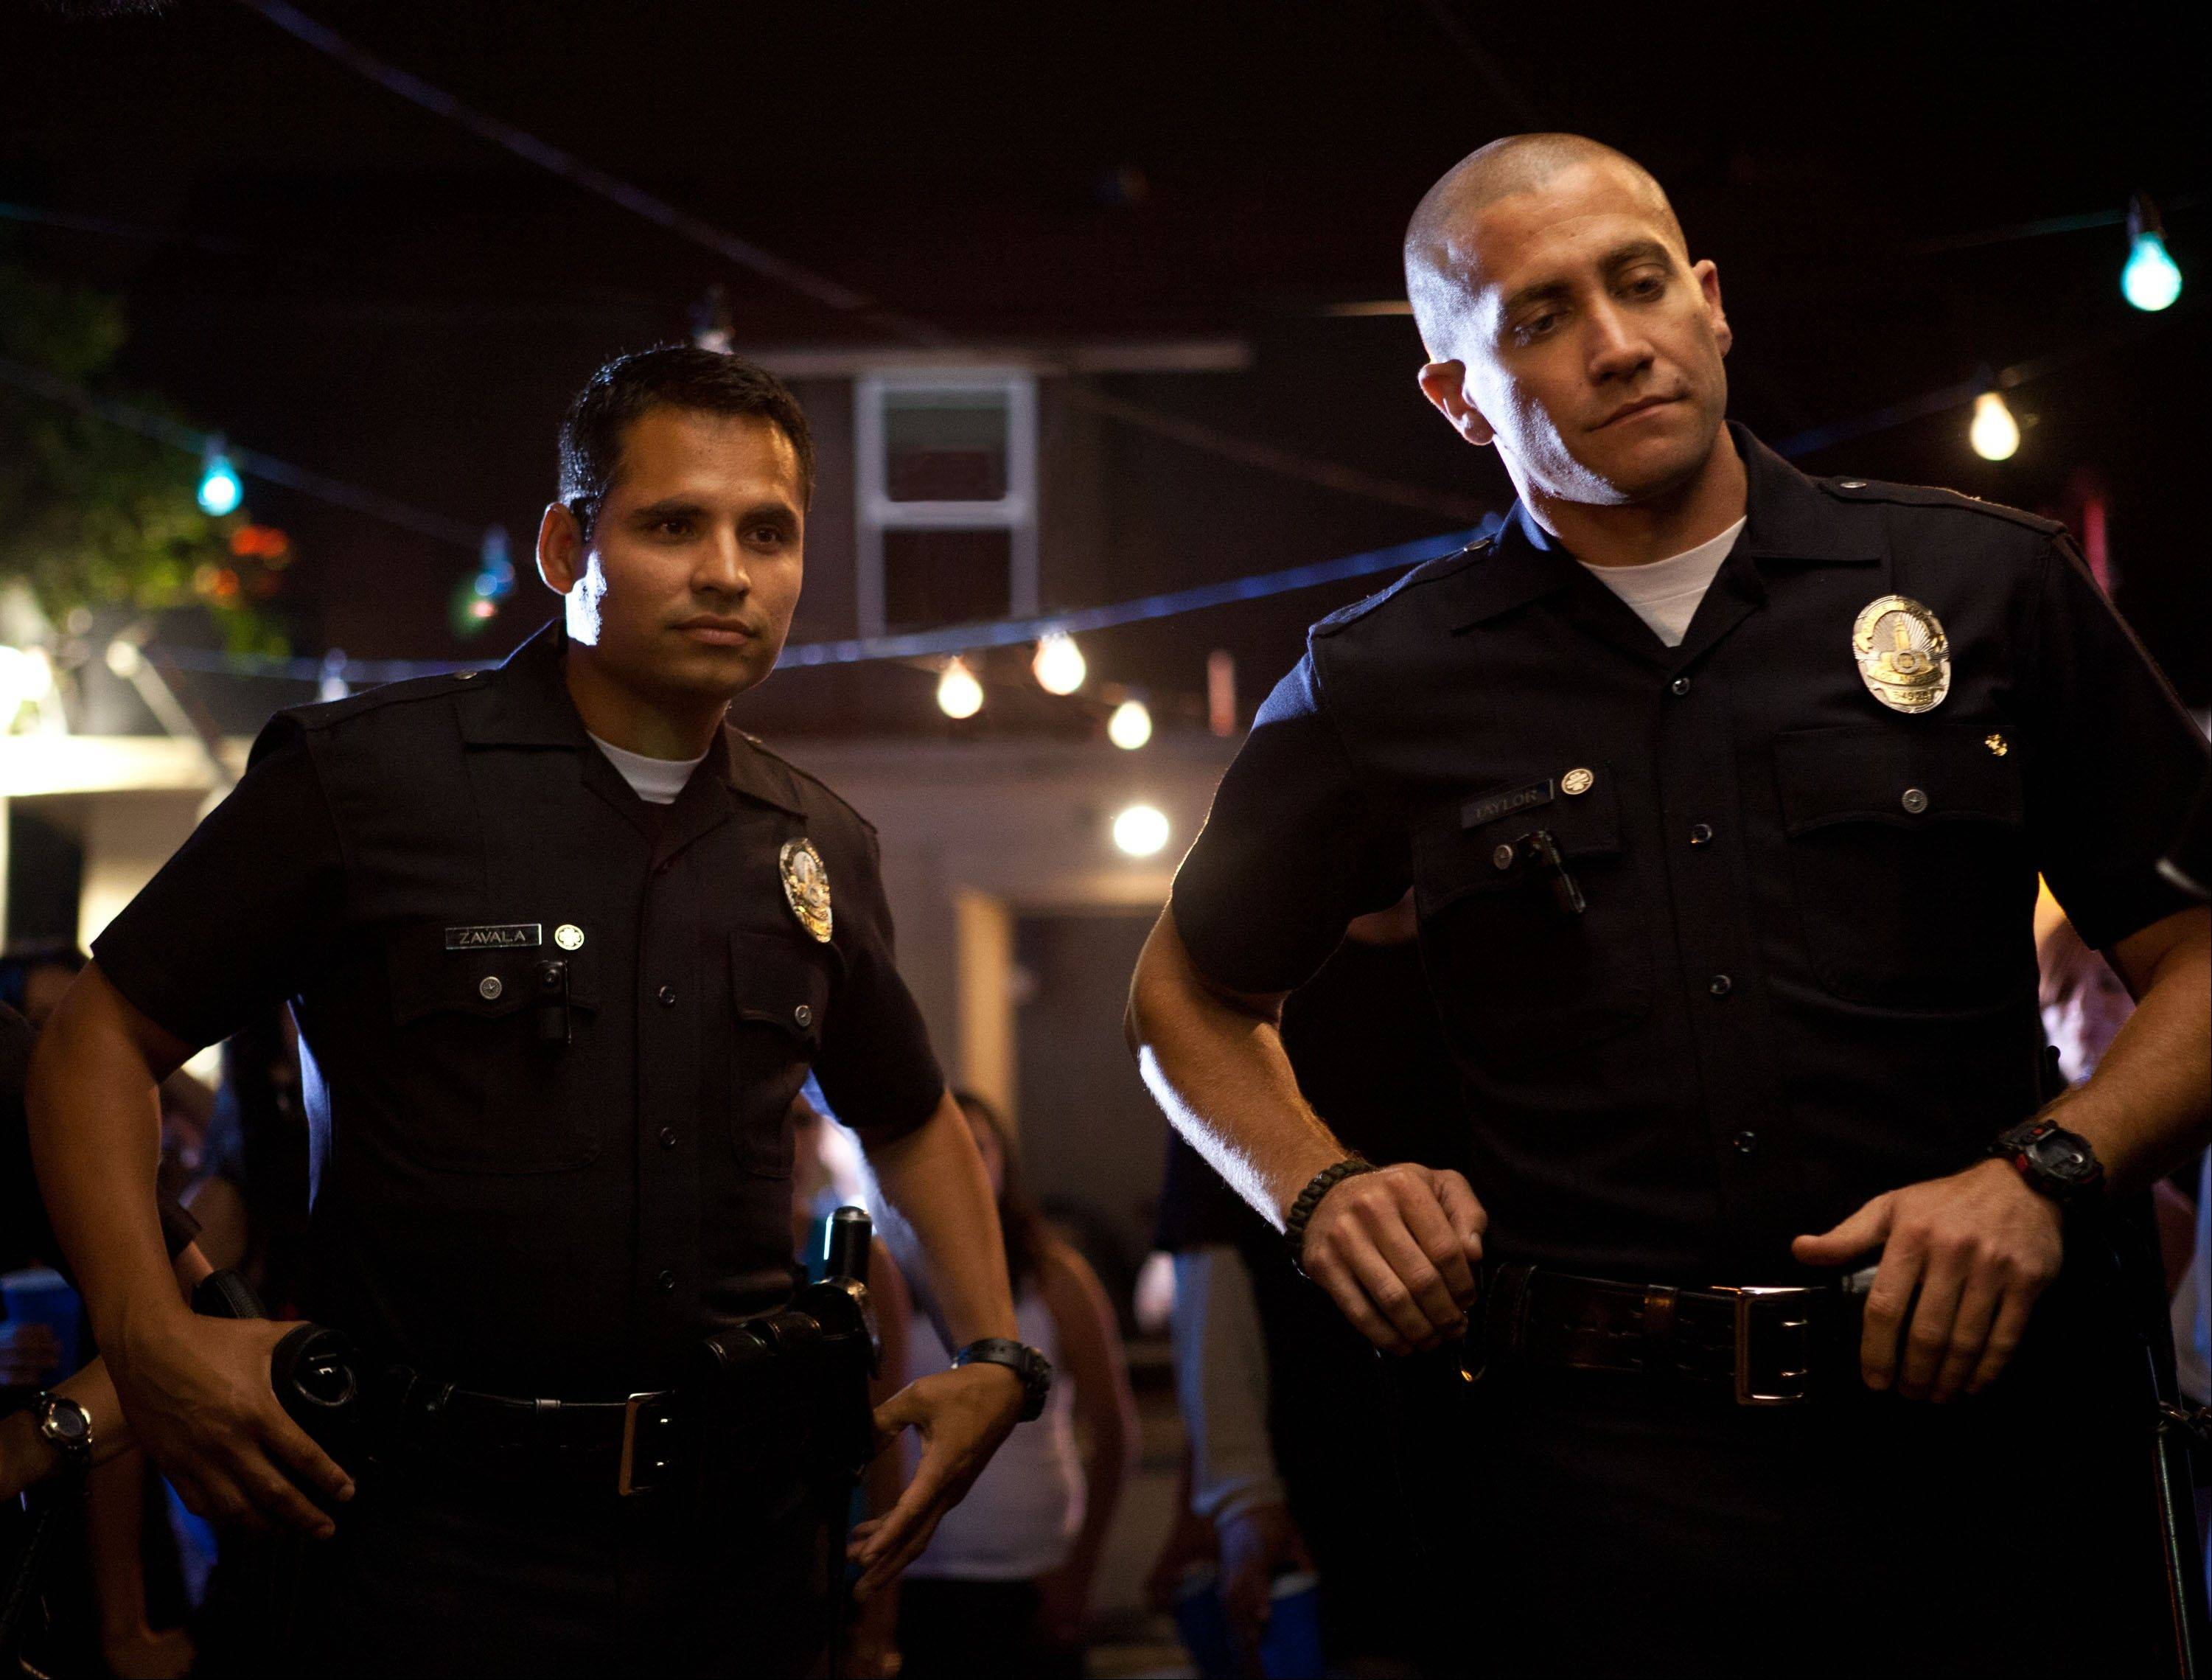 Raw, realistic cop tale 'End of Watch' worth a look